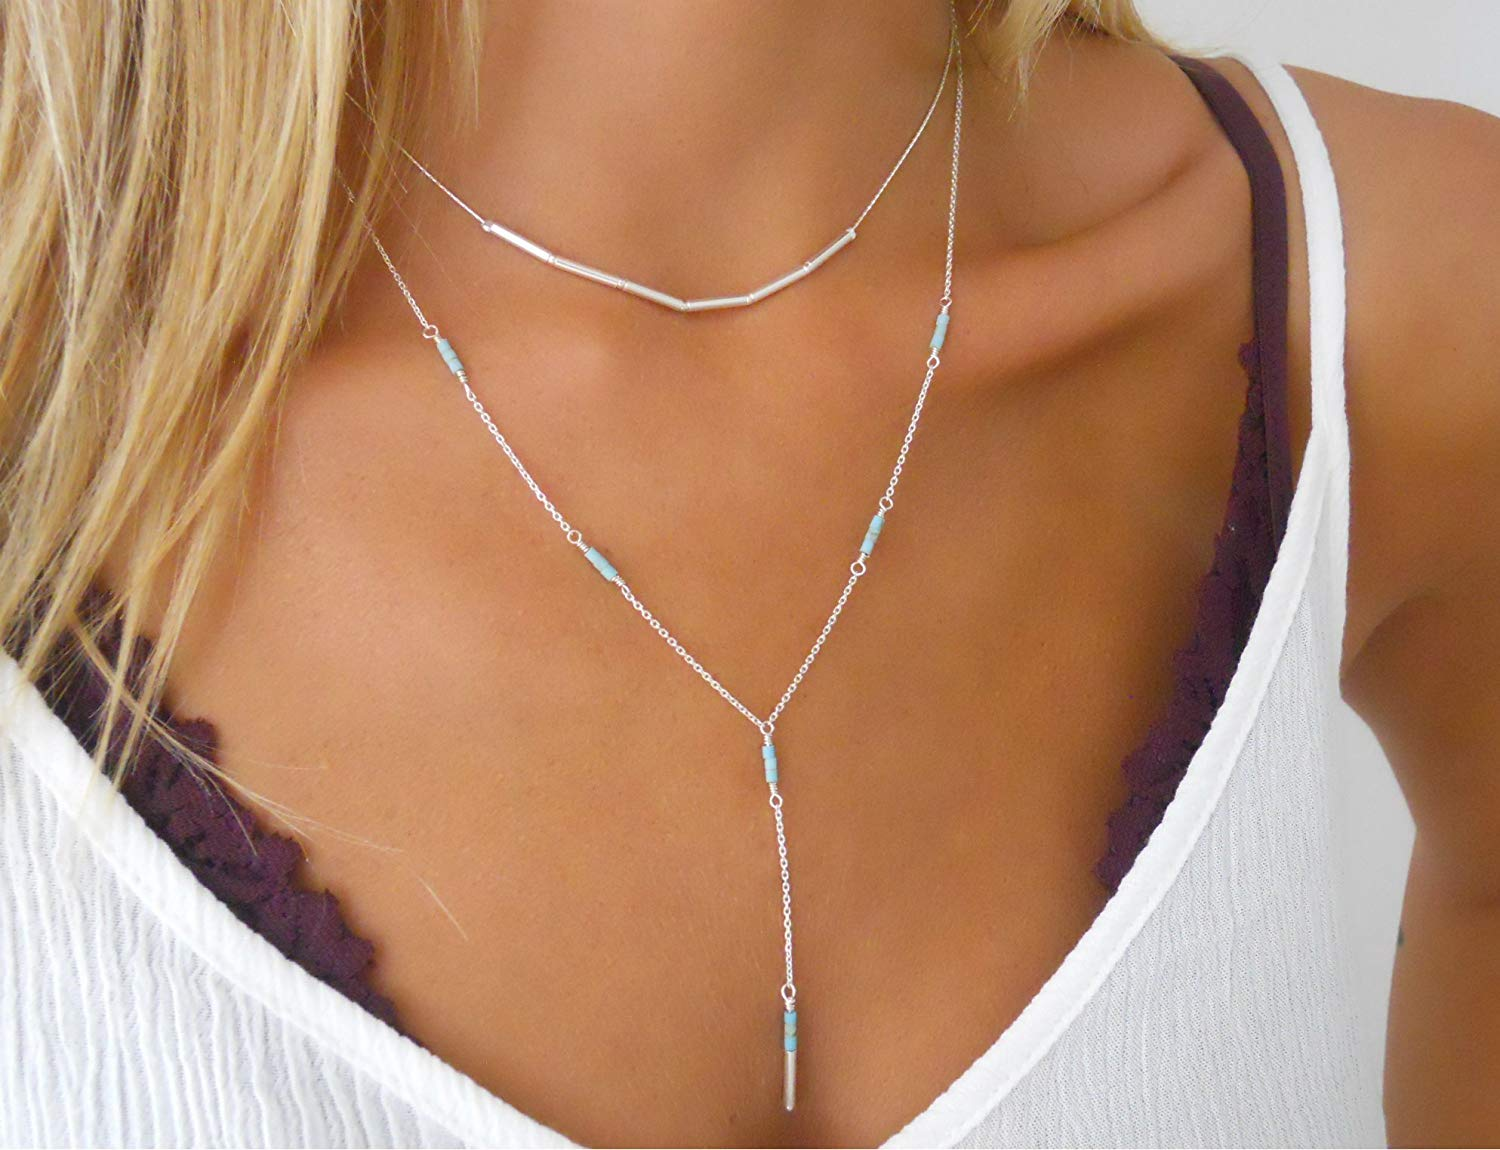 Handmade Designer Delicate Set Of 2 Silver Layered Necklaces - Silver Tube Beads Necklace & Silver Lariat Y Shape Necklace With Turquoise Beads